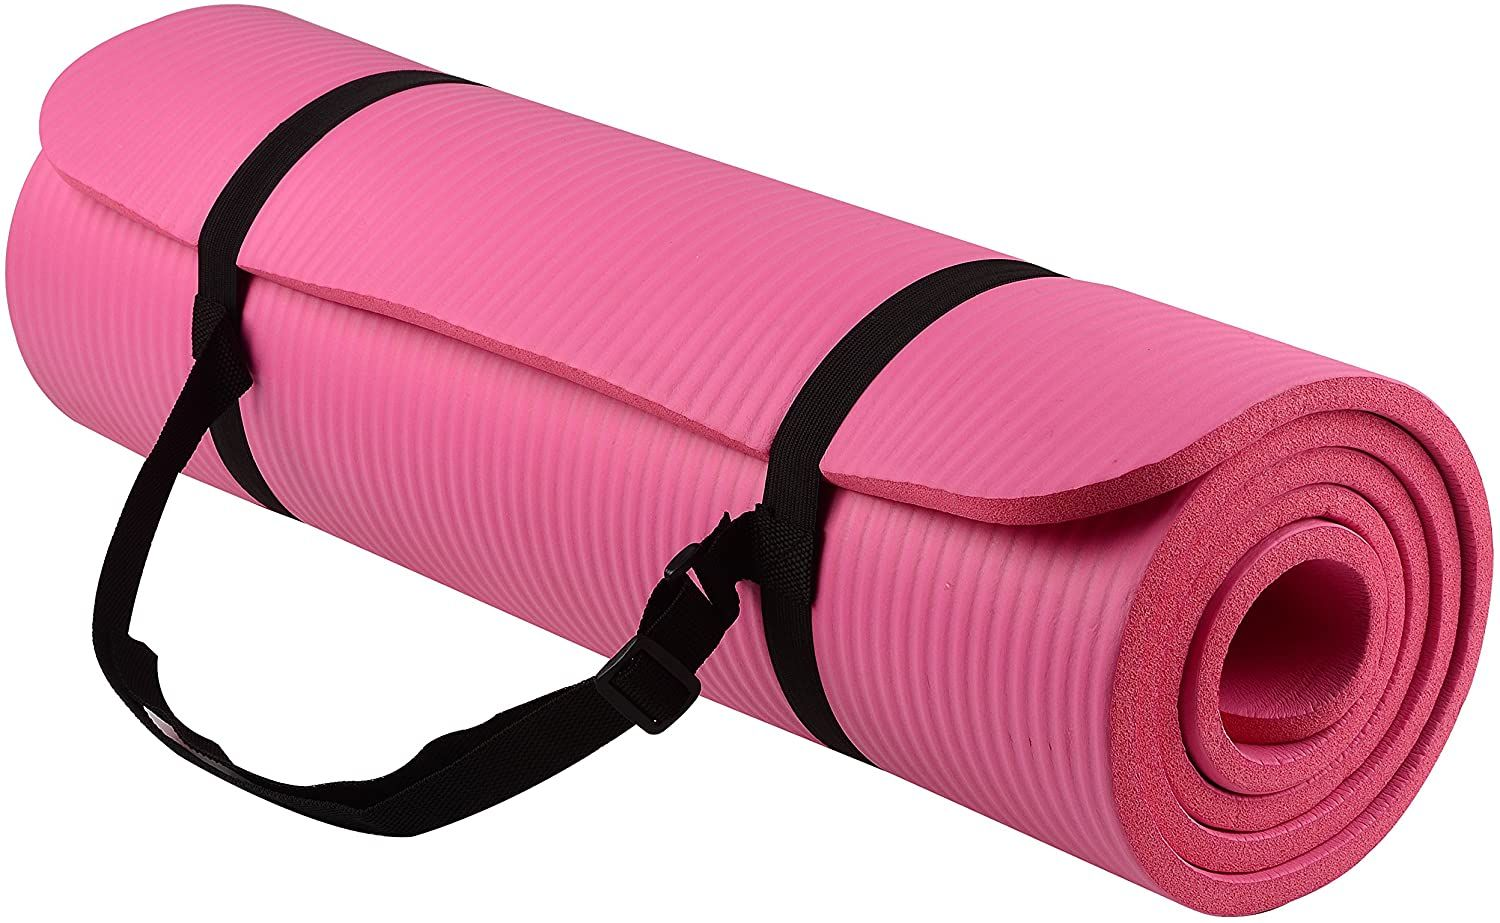 Balancefrom Goyoga All Purpose 1 2 Inch Extra Thick High Density Anti Tear Exercise Yoga Mat With Carrying Strap Price In 2020 Yoga Mats Best Yoga Mat Towel Yoga Mat